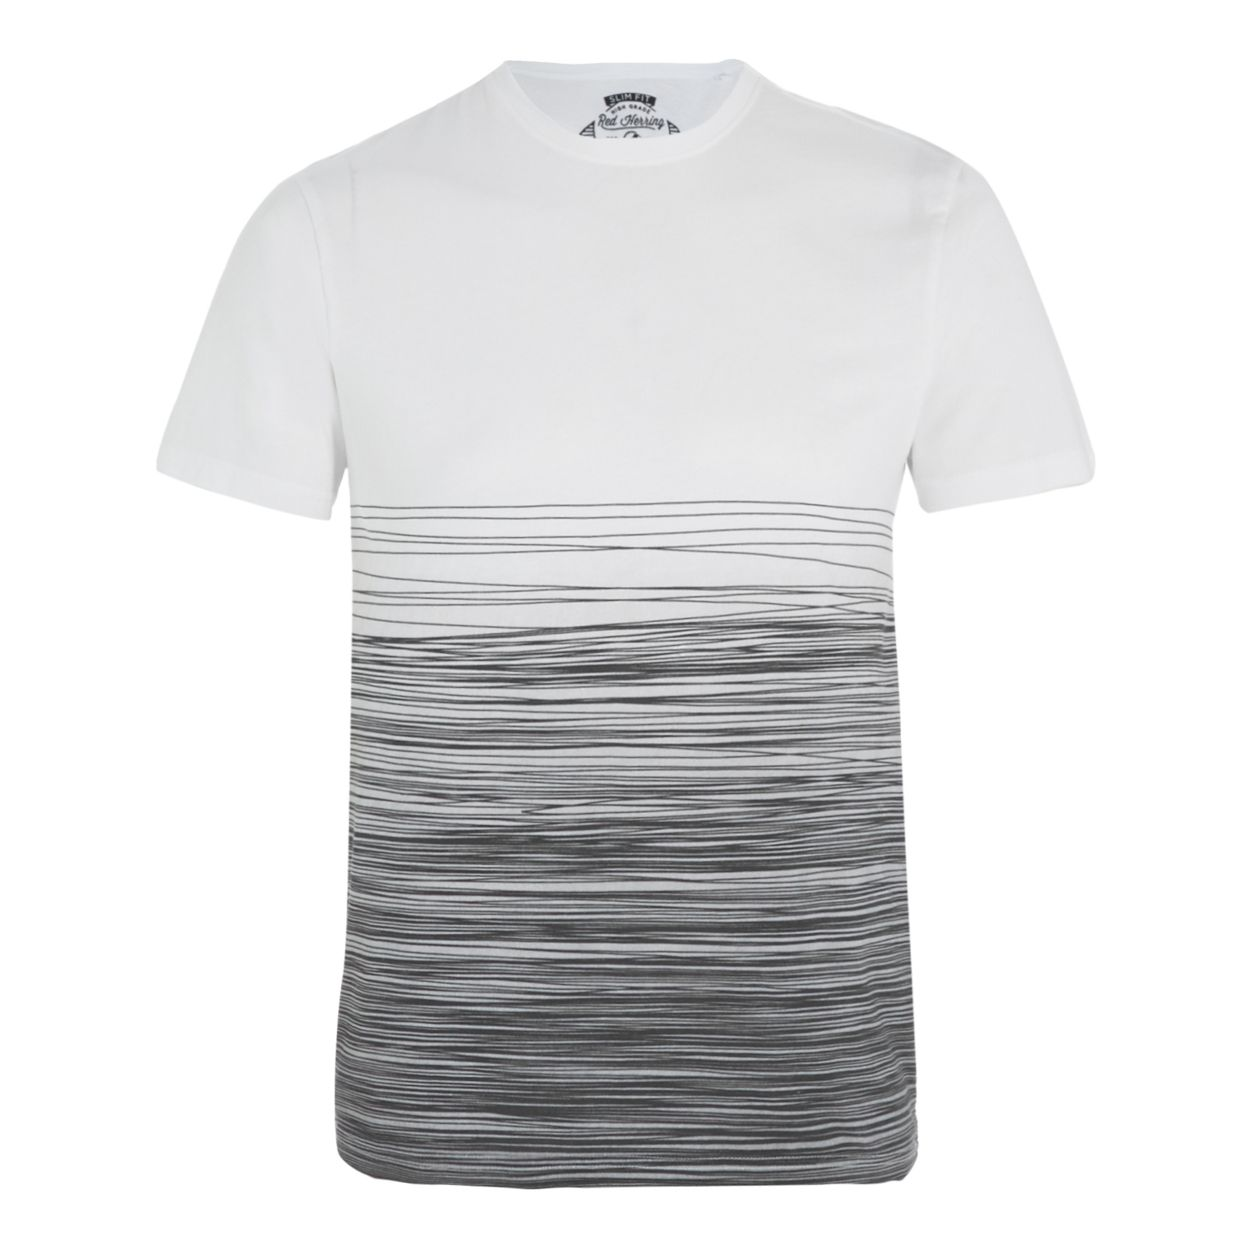 Red Herring White and grey striped slim fit t-shirt